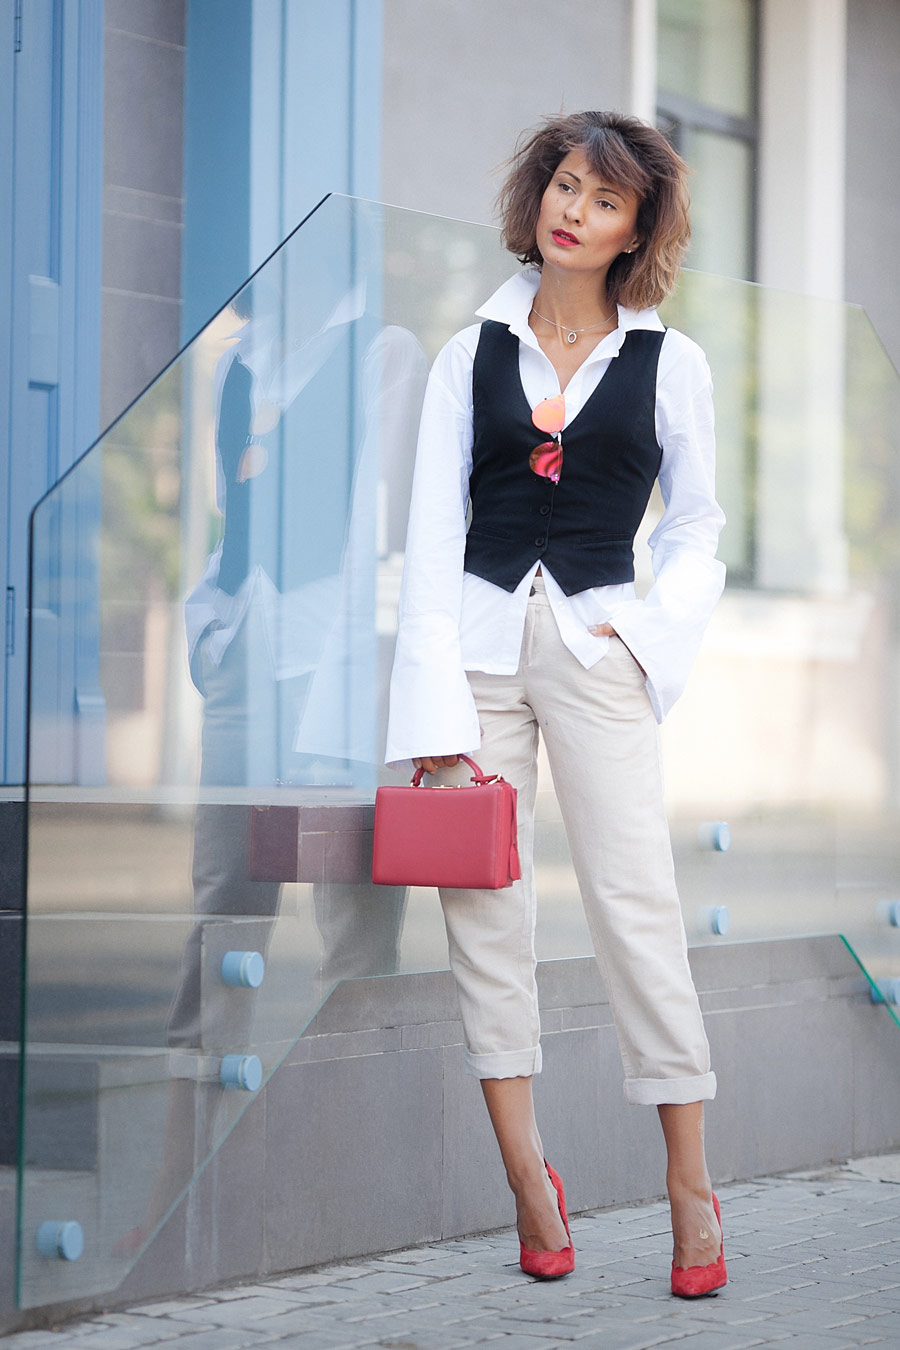 office dress code ideas, summer office dress code ideas, ellena galant girl fashion blogger, mark cross red bag, suit waistcoat outfit,